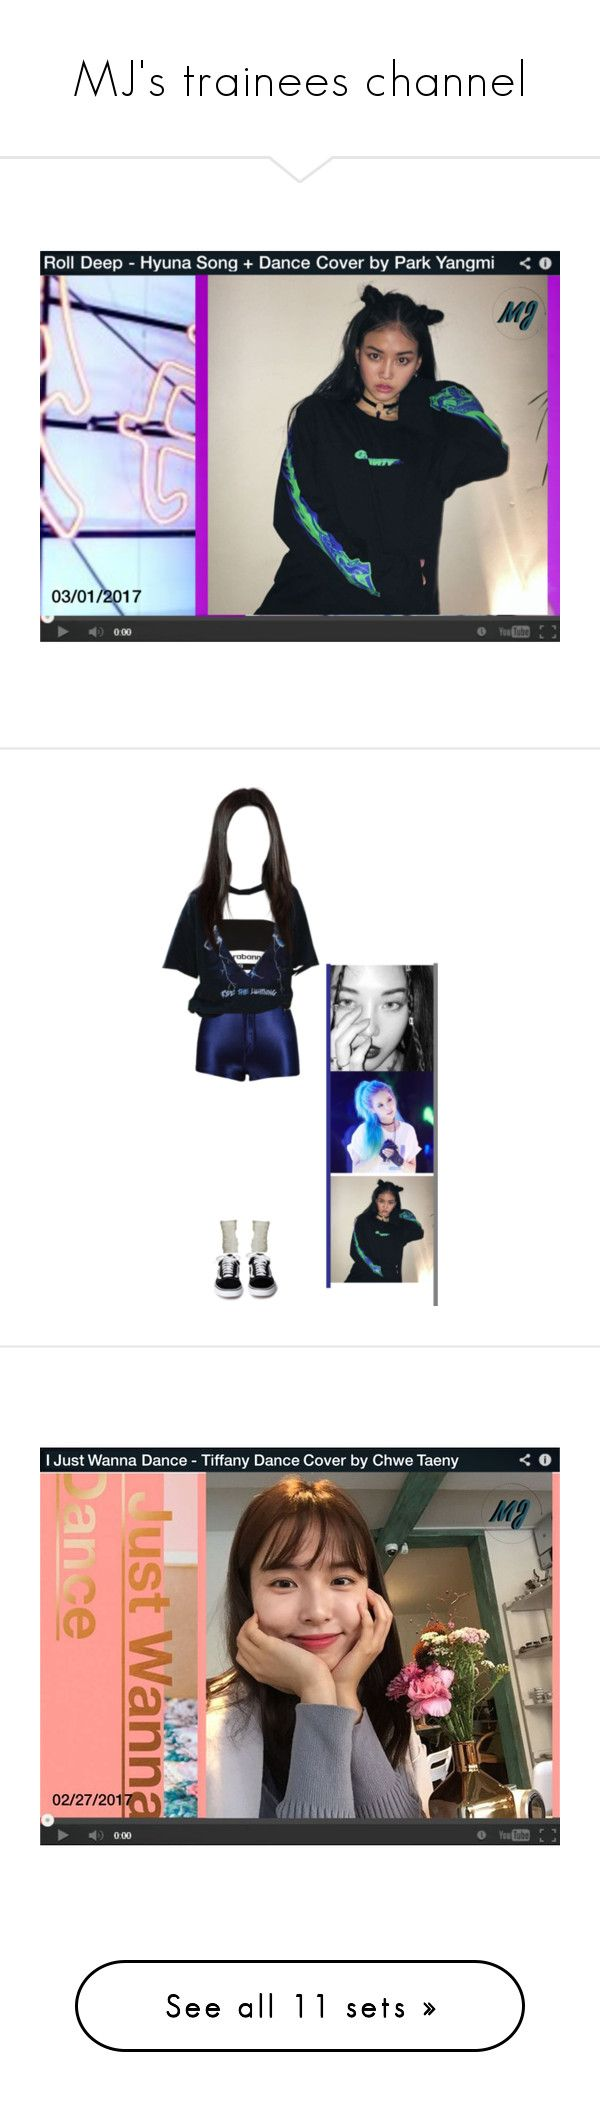 """""""MJ's trainees channel"""" by mj-entertainment ❤ liked on Polyvore featuring art, Paco Rabanne, Under Armour, Topshop, Vetements, Old Navy, Vans, chwetaeny, jeona and Yves Saint Laurent"""